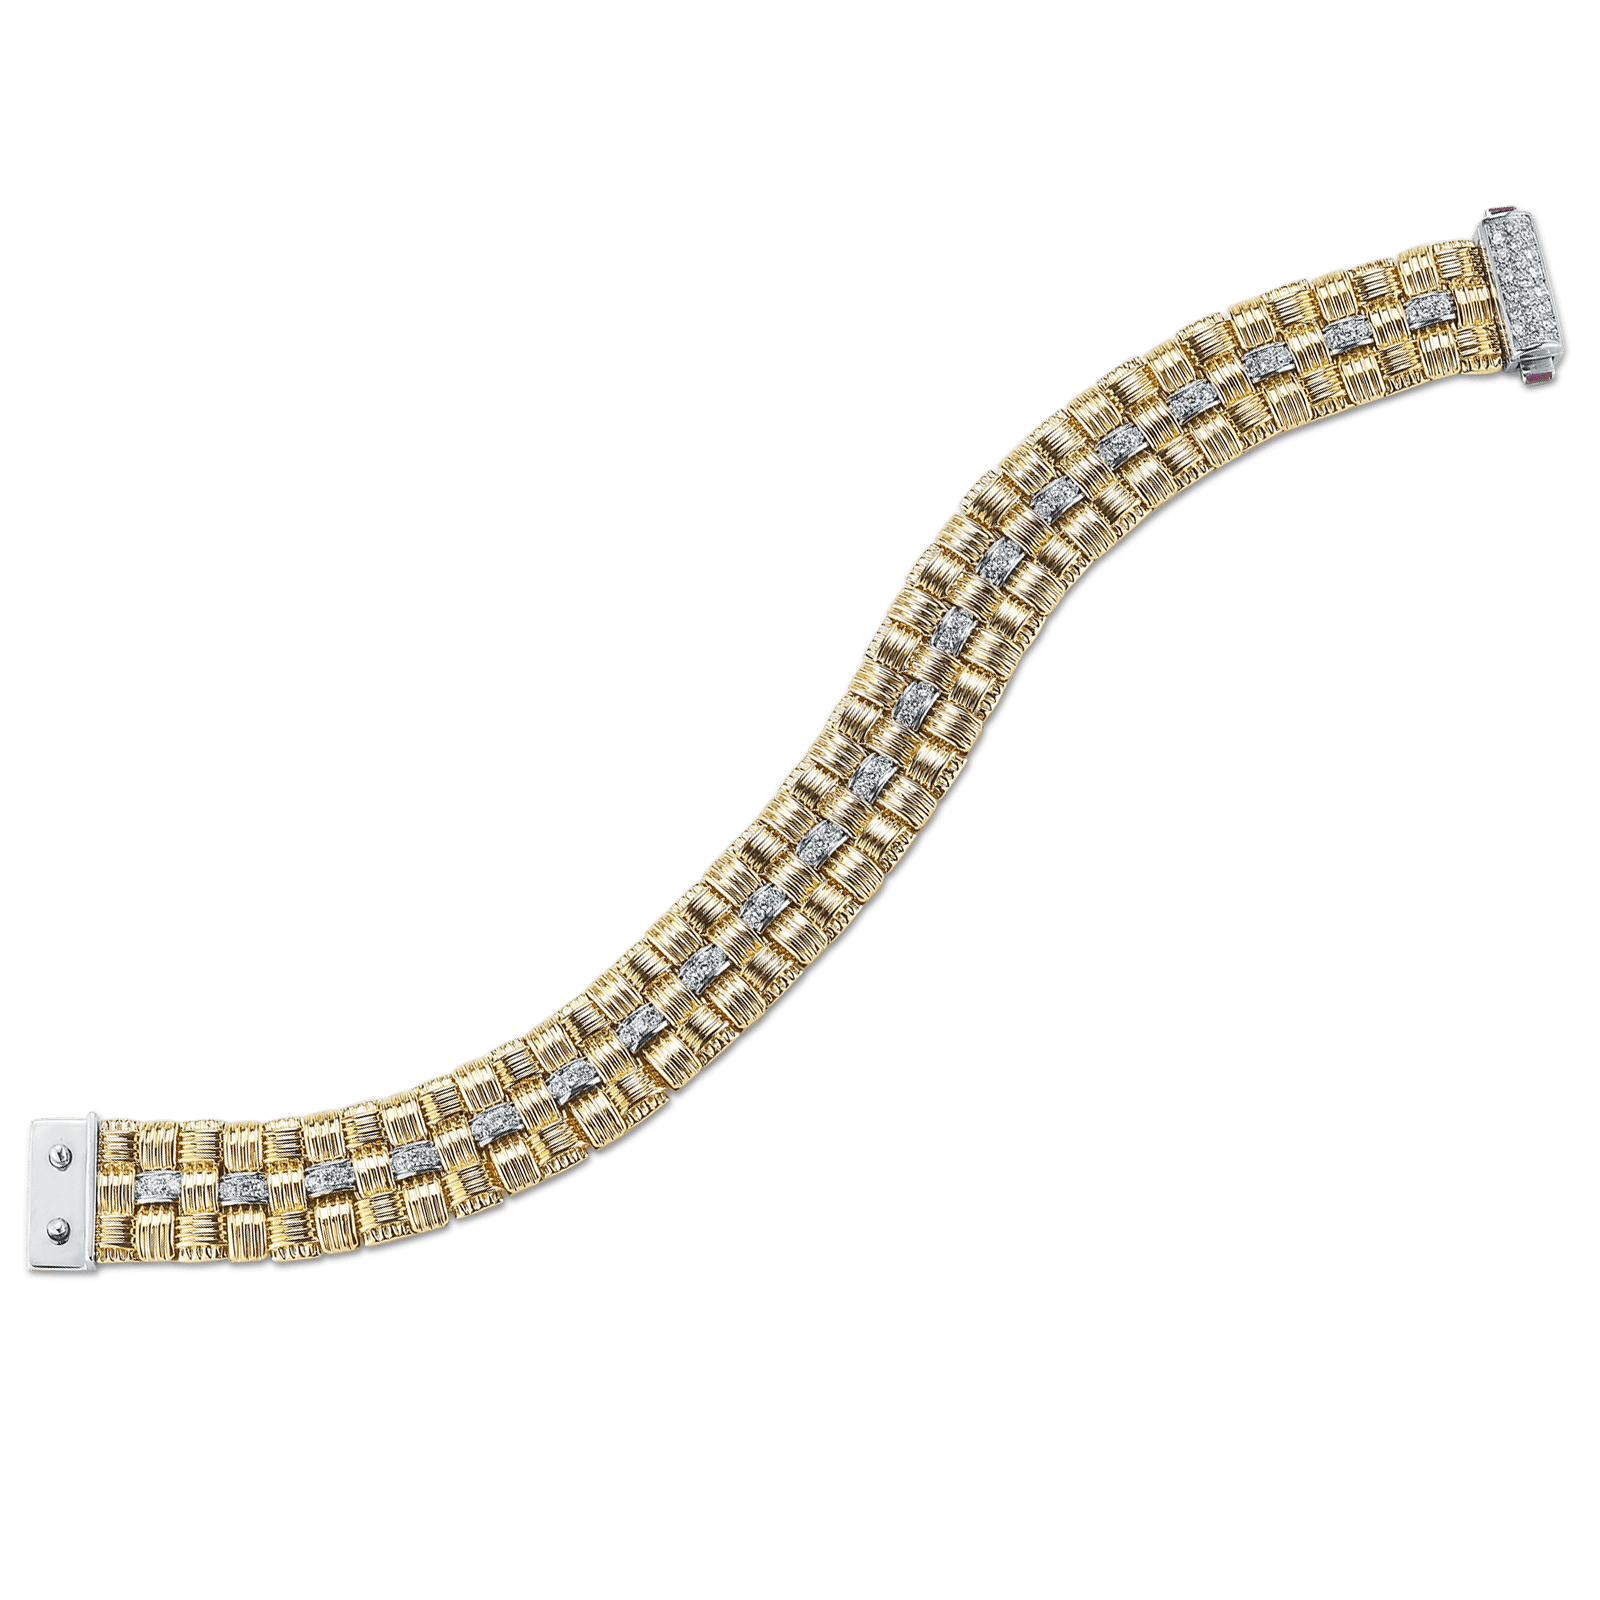 Roberto Coin S 3 Row Bracelet With Diamonds In Appassionata